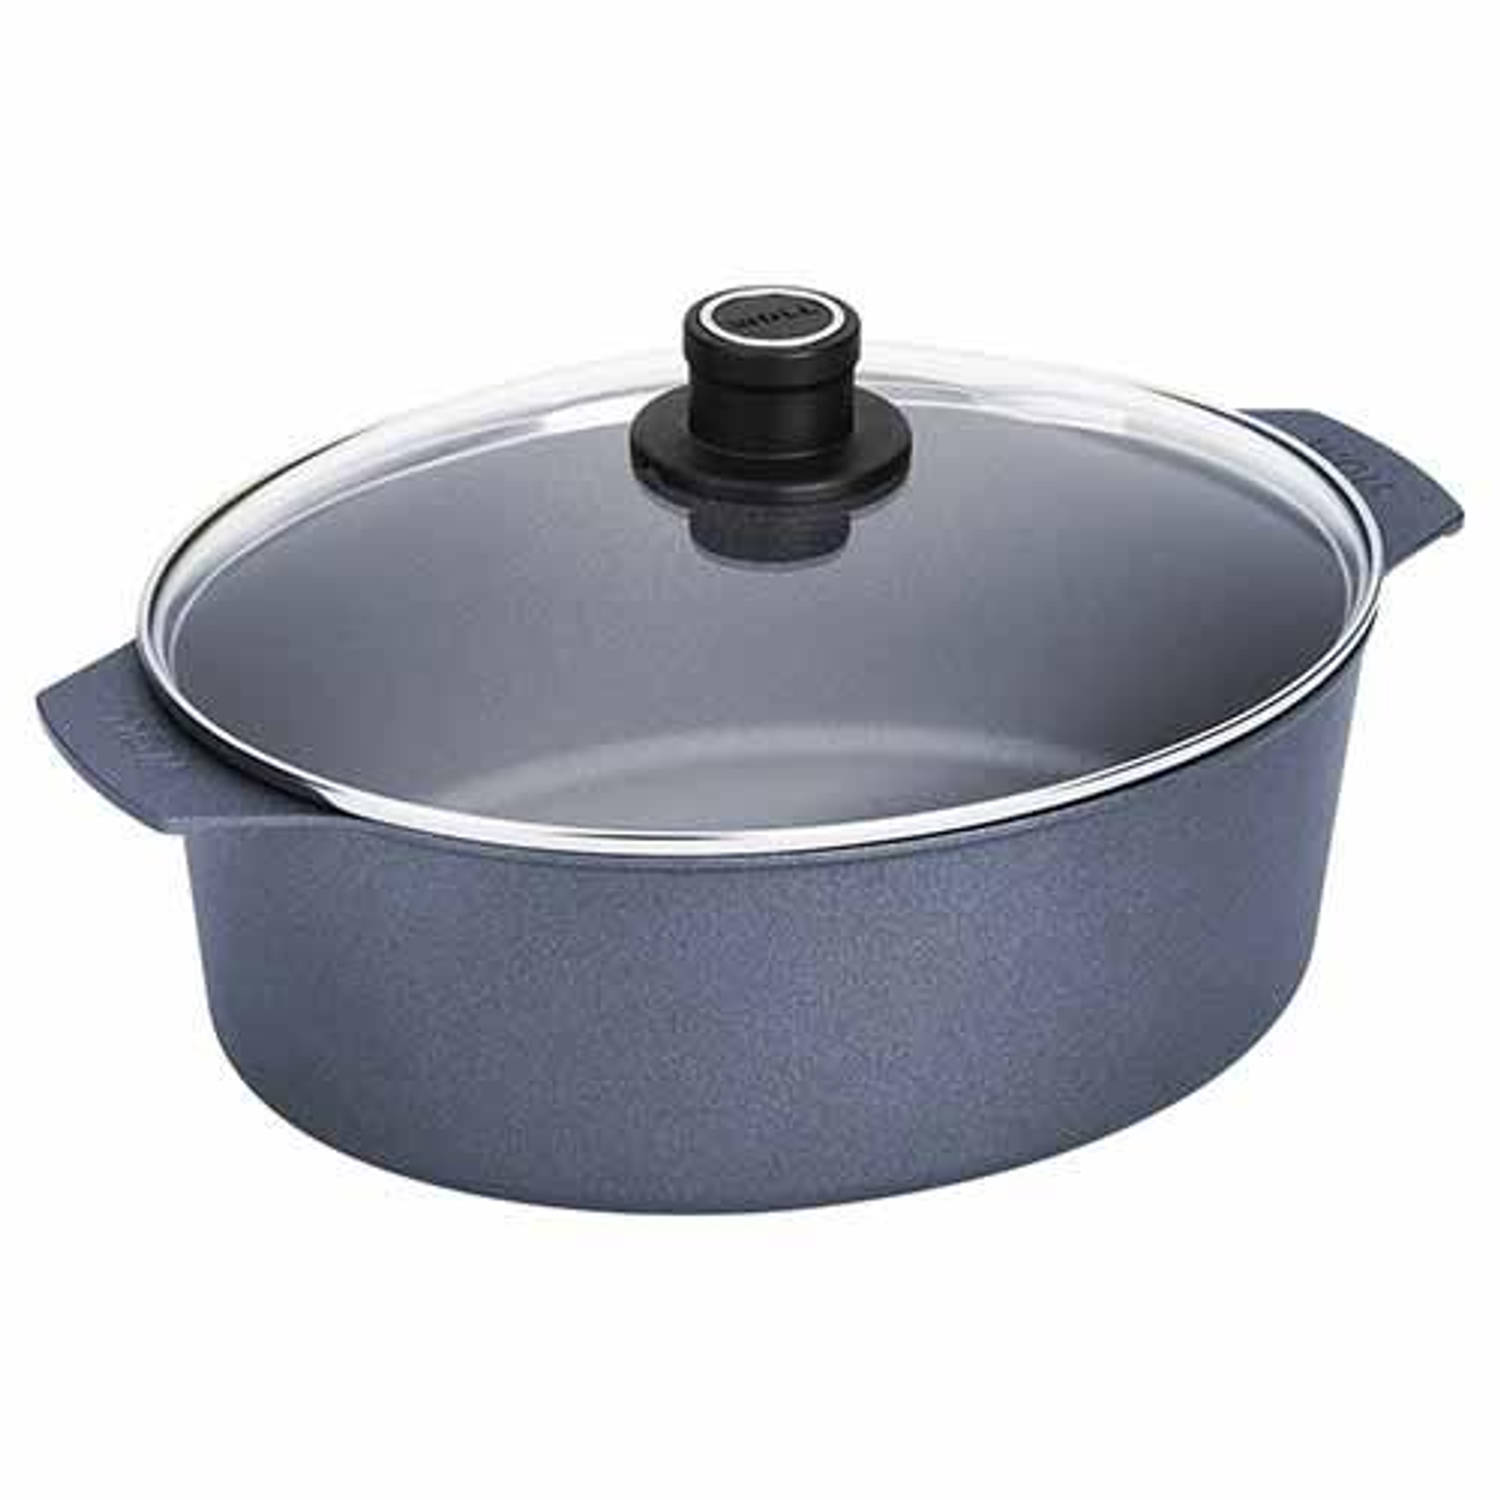 Braadpan met deksel, 6 liter - woll - diamond lite induction